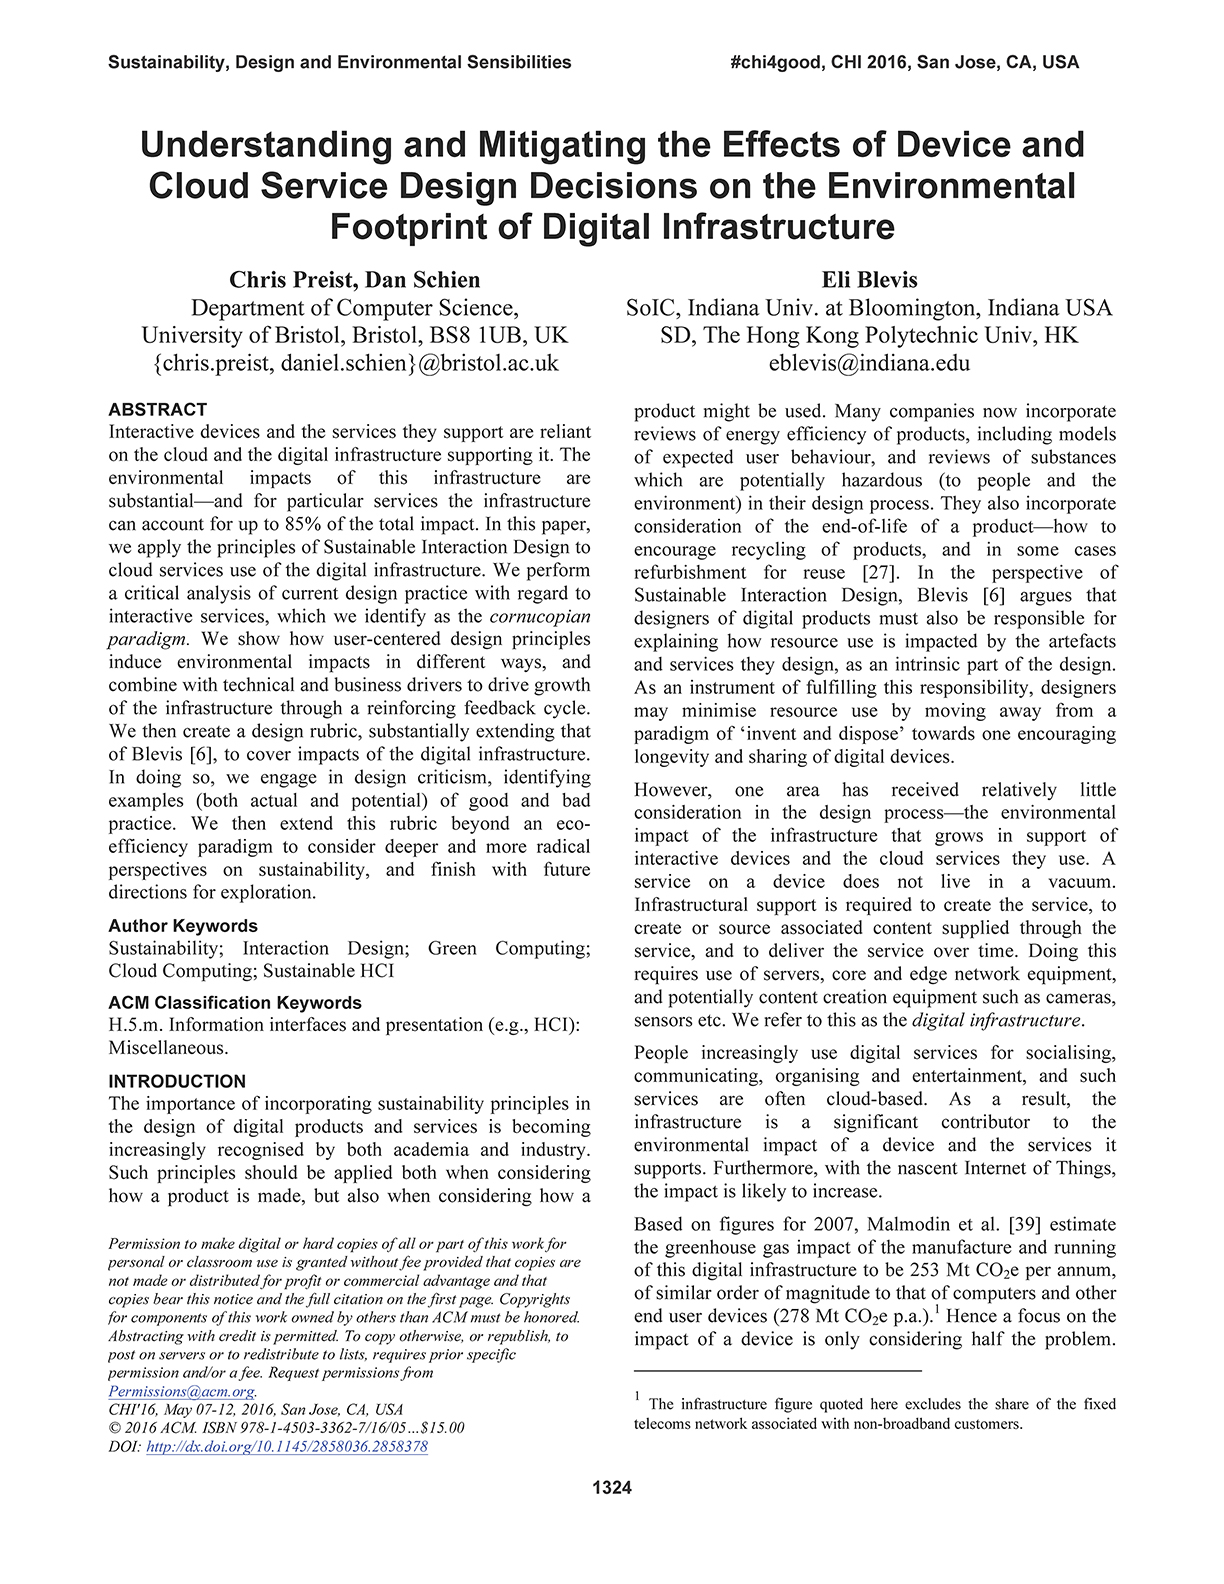 Understanding and Mitigating the Effects of Device and